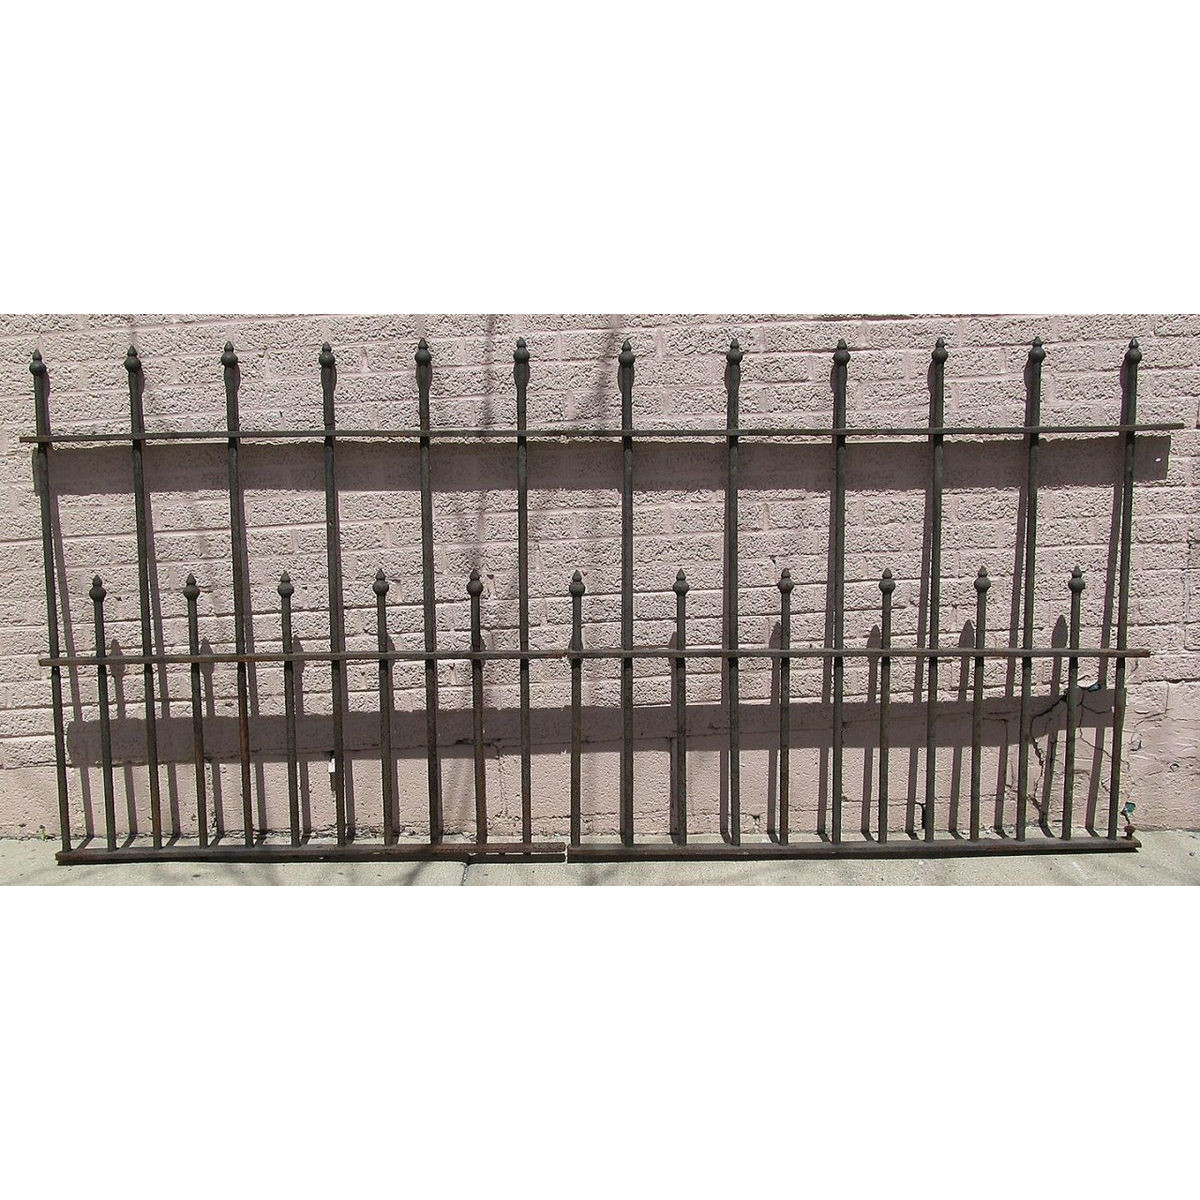 S13068 - Antique Wrought Iron Fencing